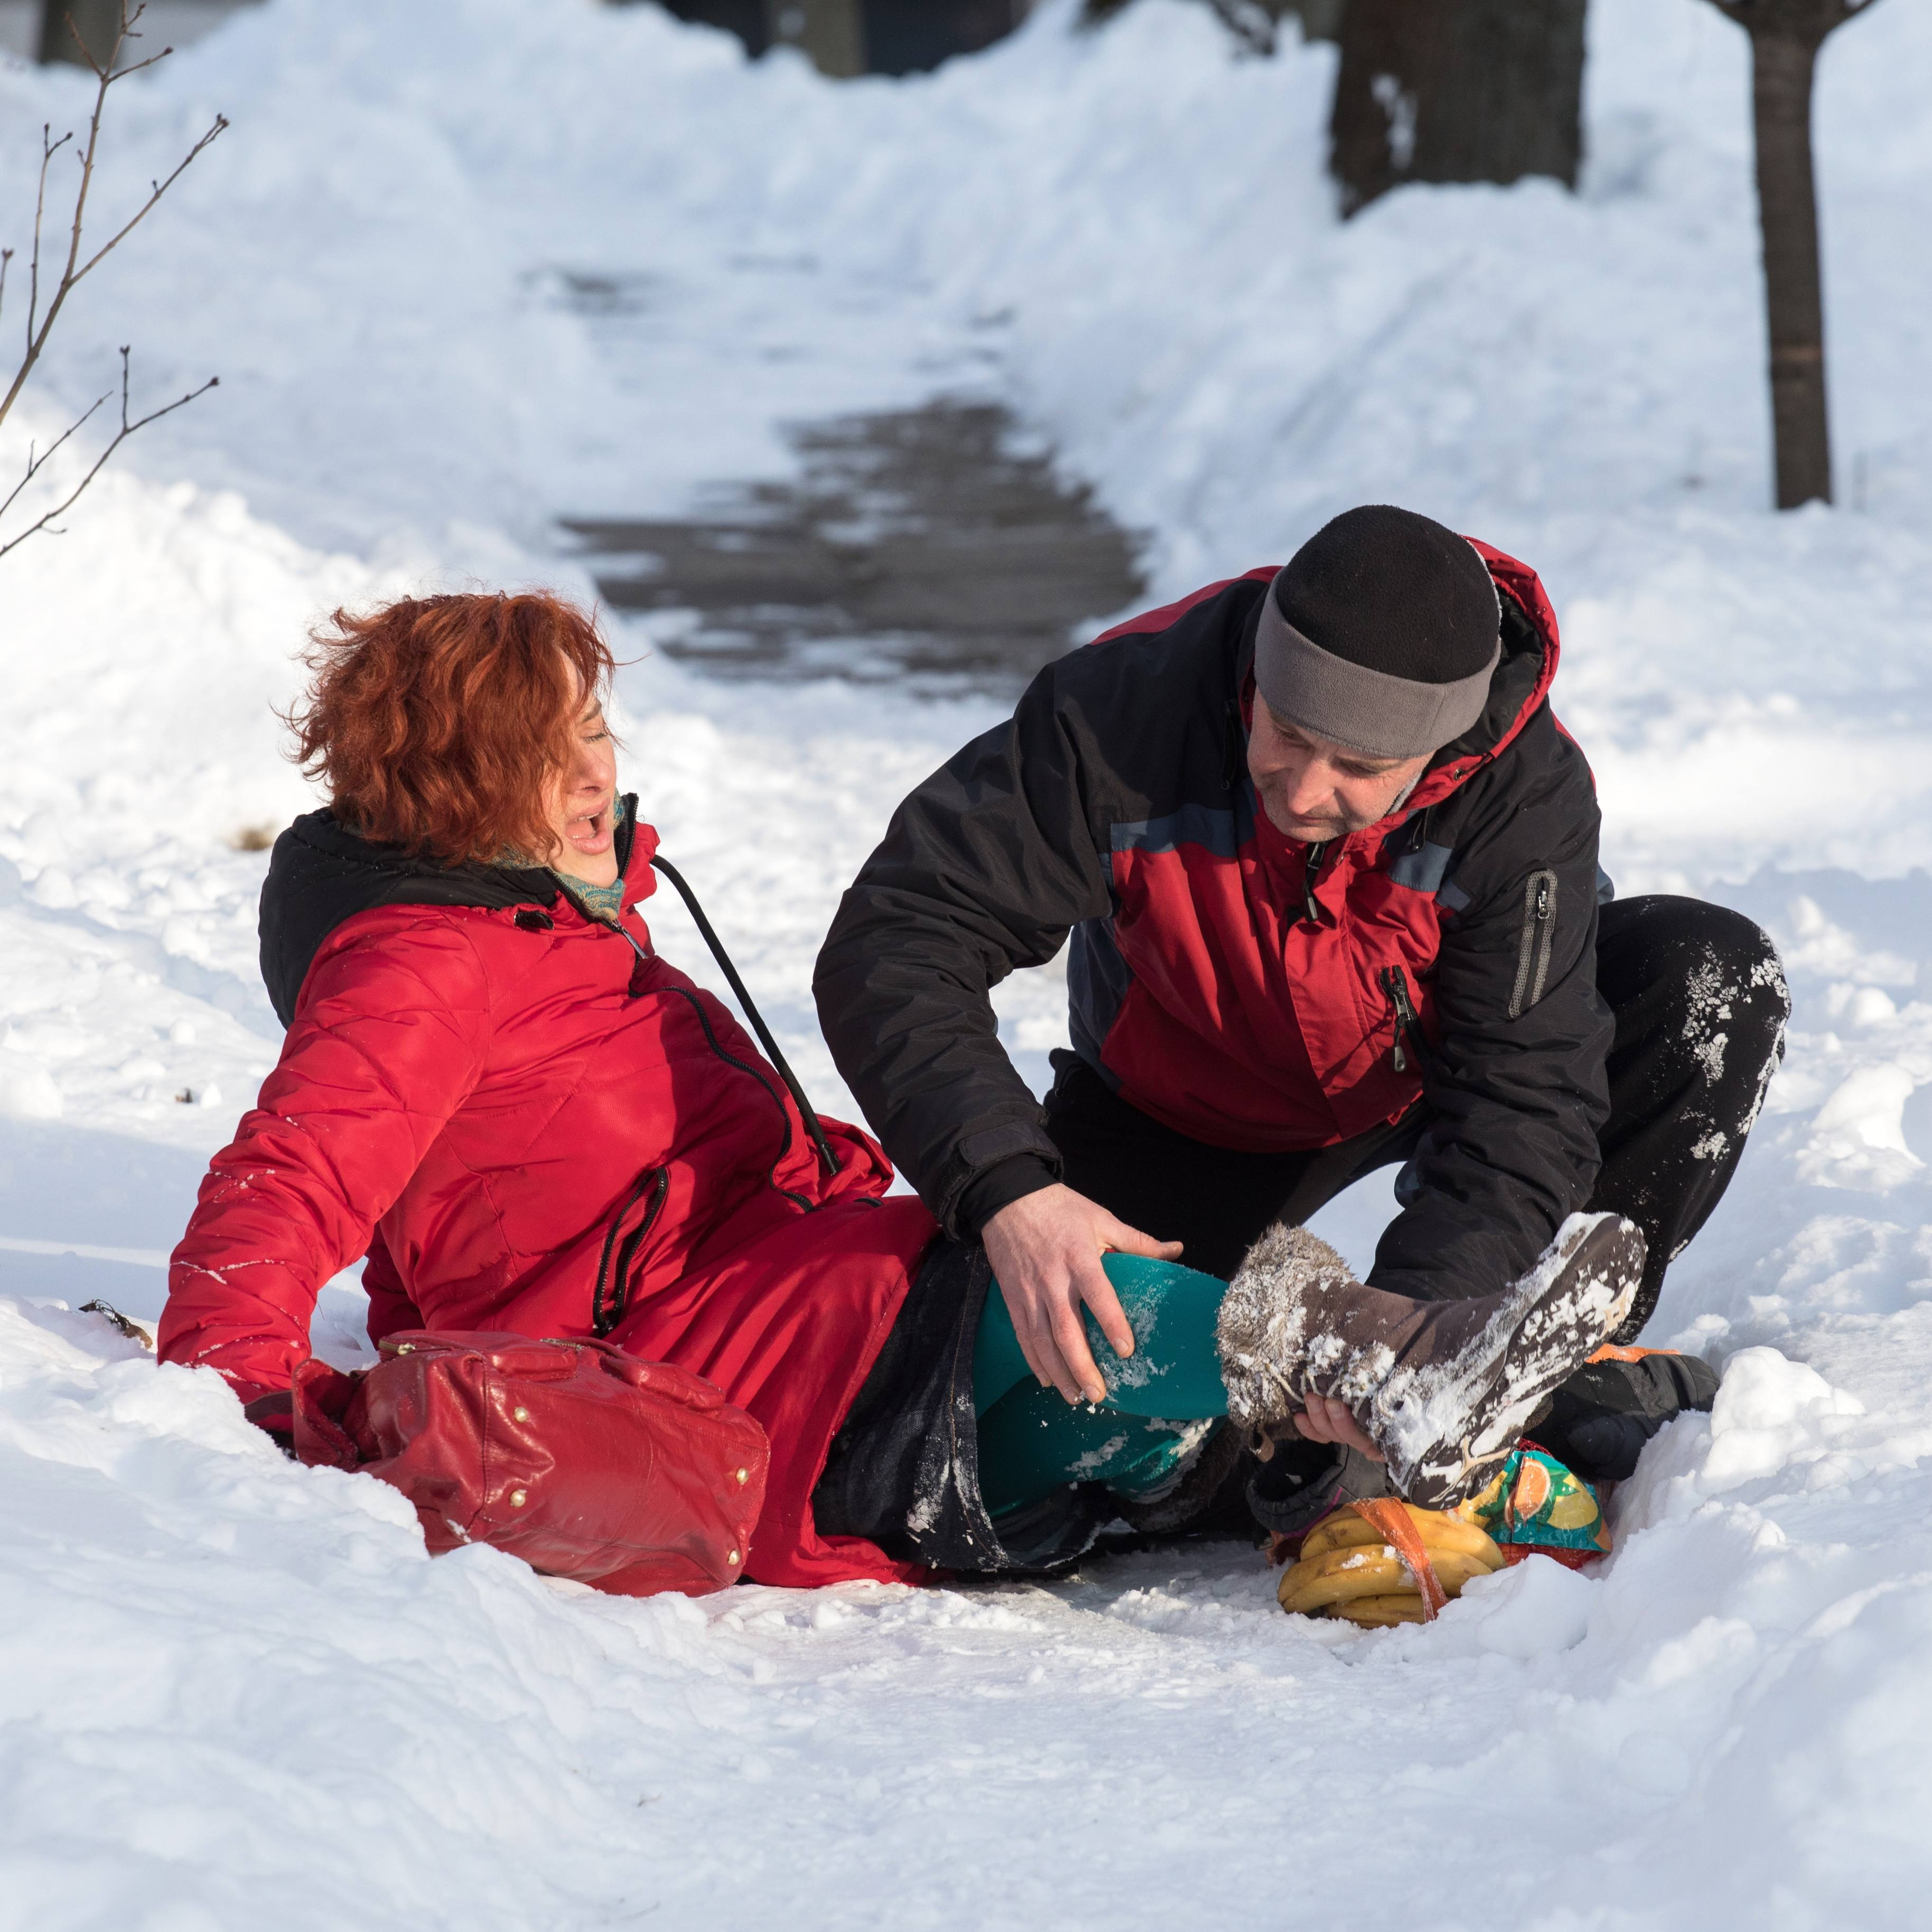 a woman who has fallen on a snowy, icy path in the winter woods and a male friend is helping her